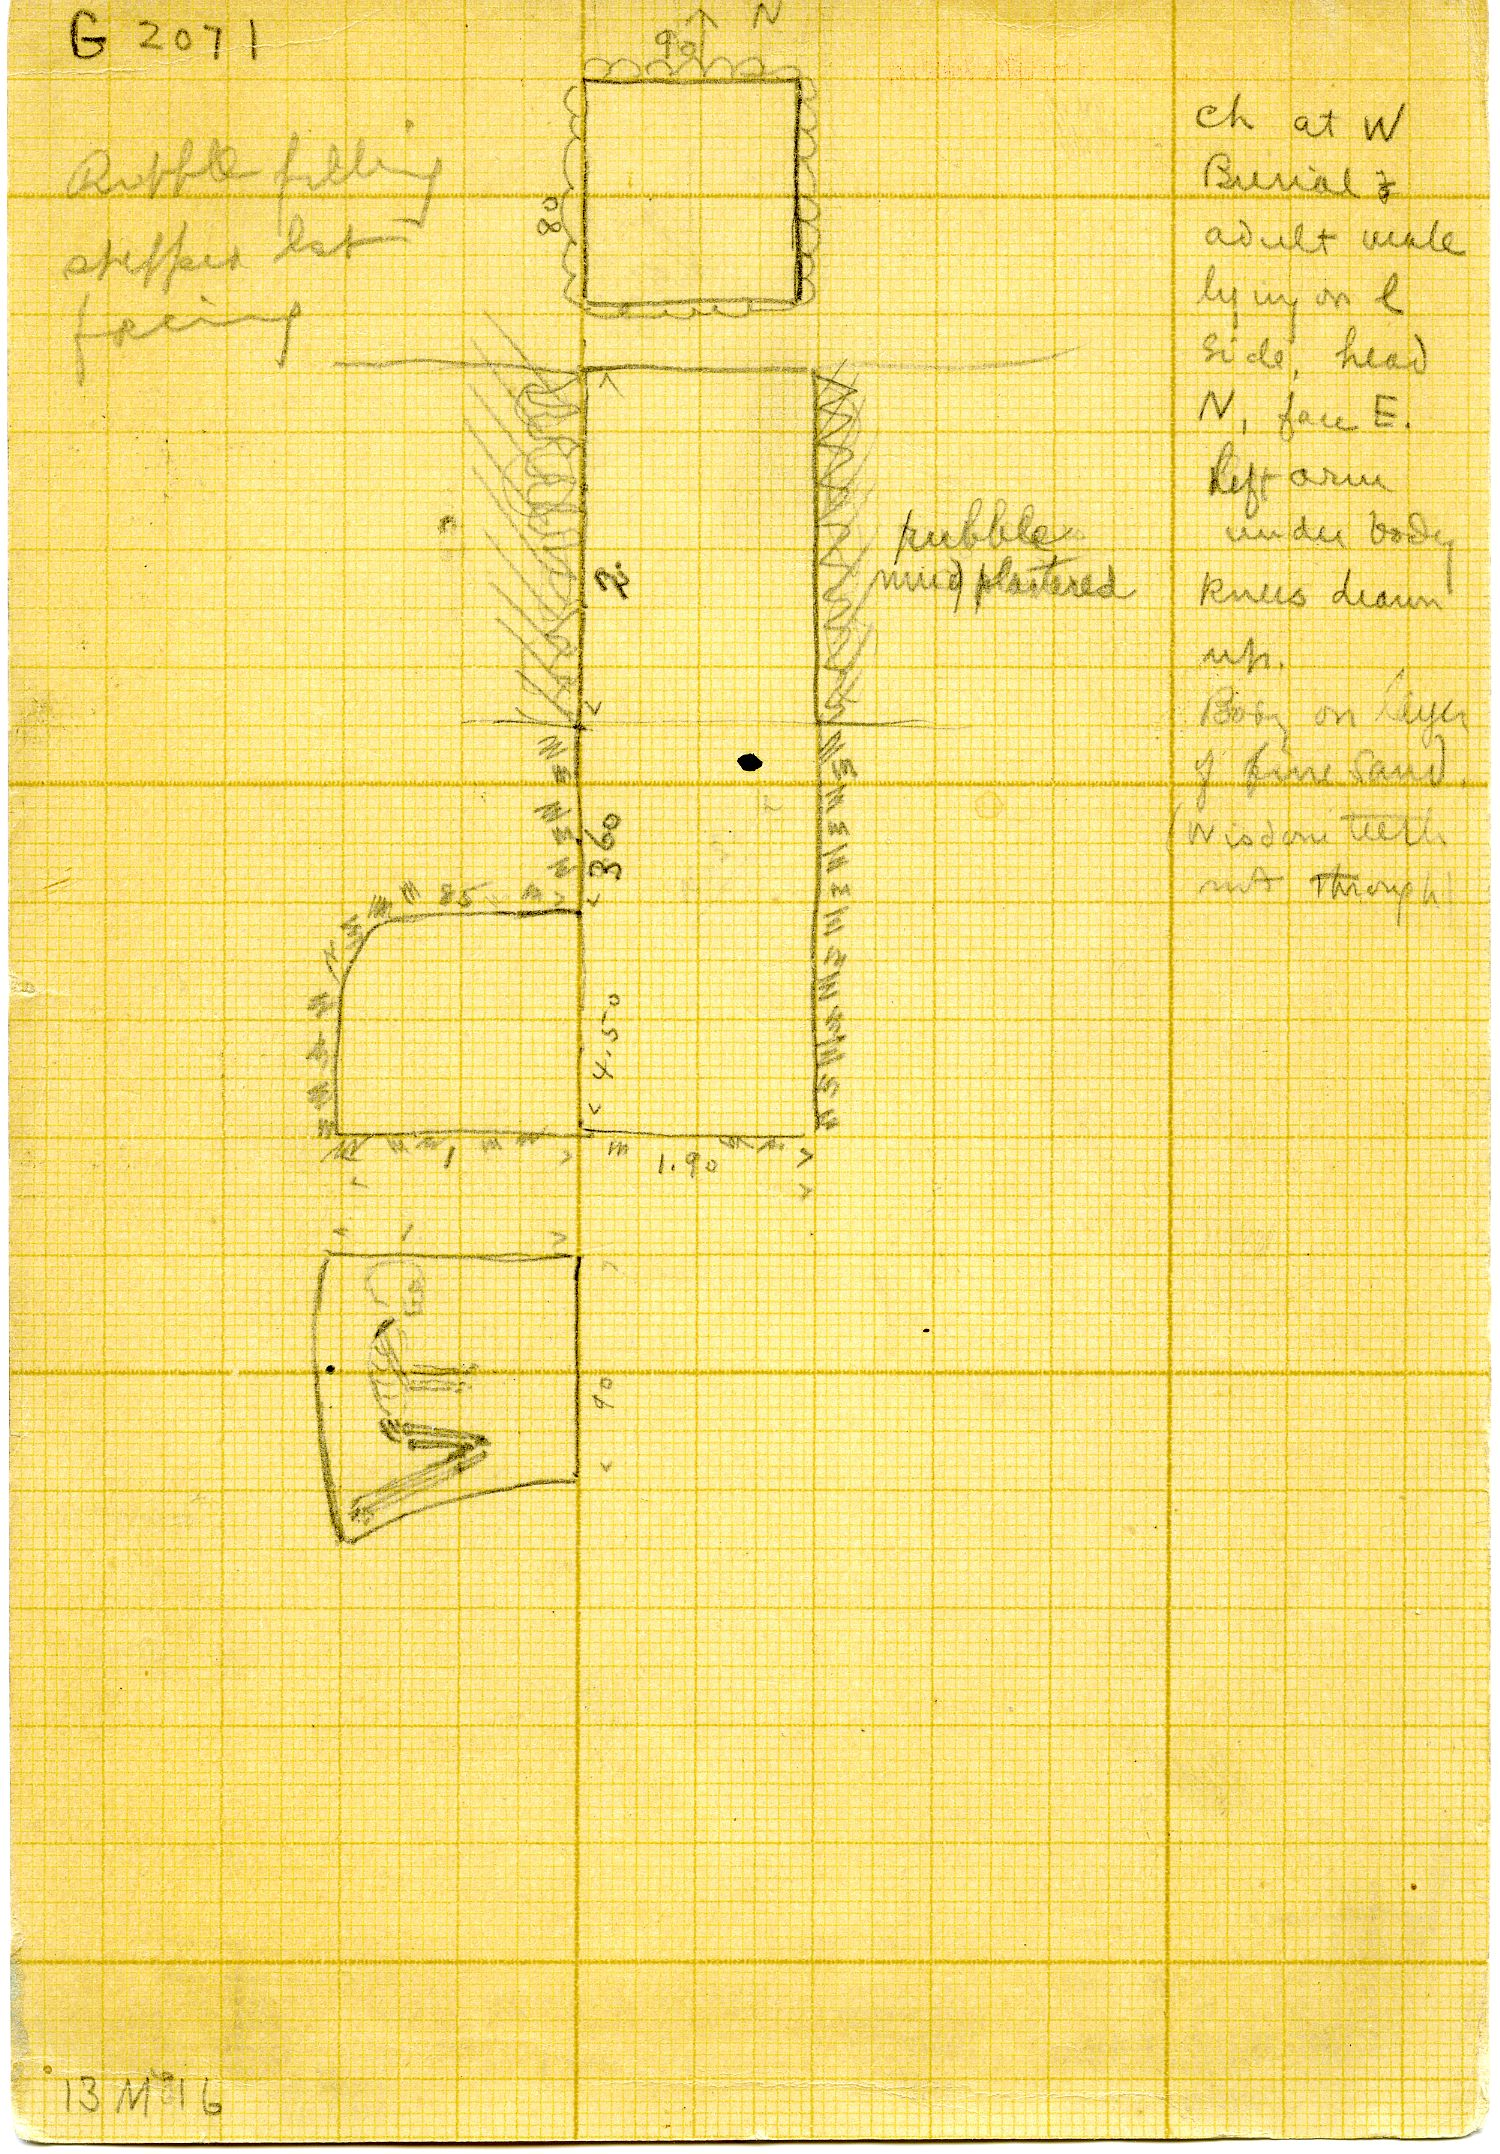 Maps and plans: G 3071, Shaft A